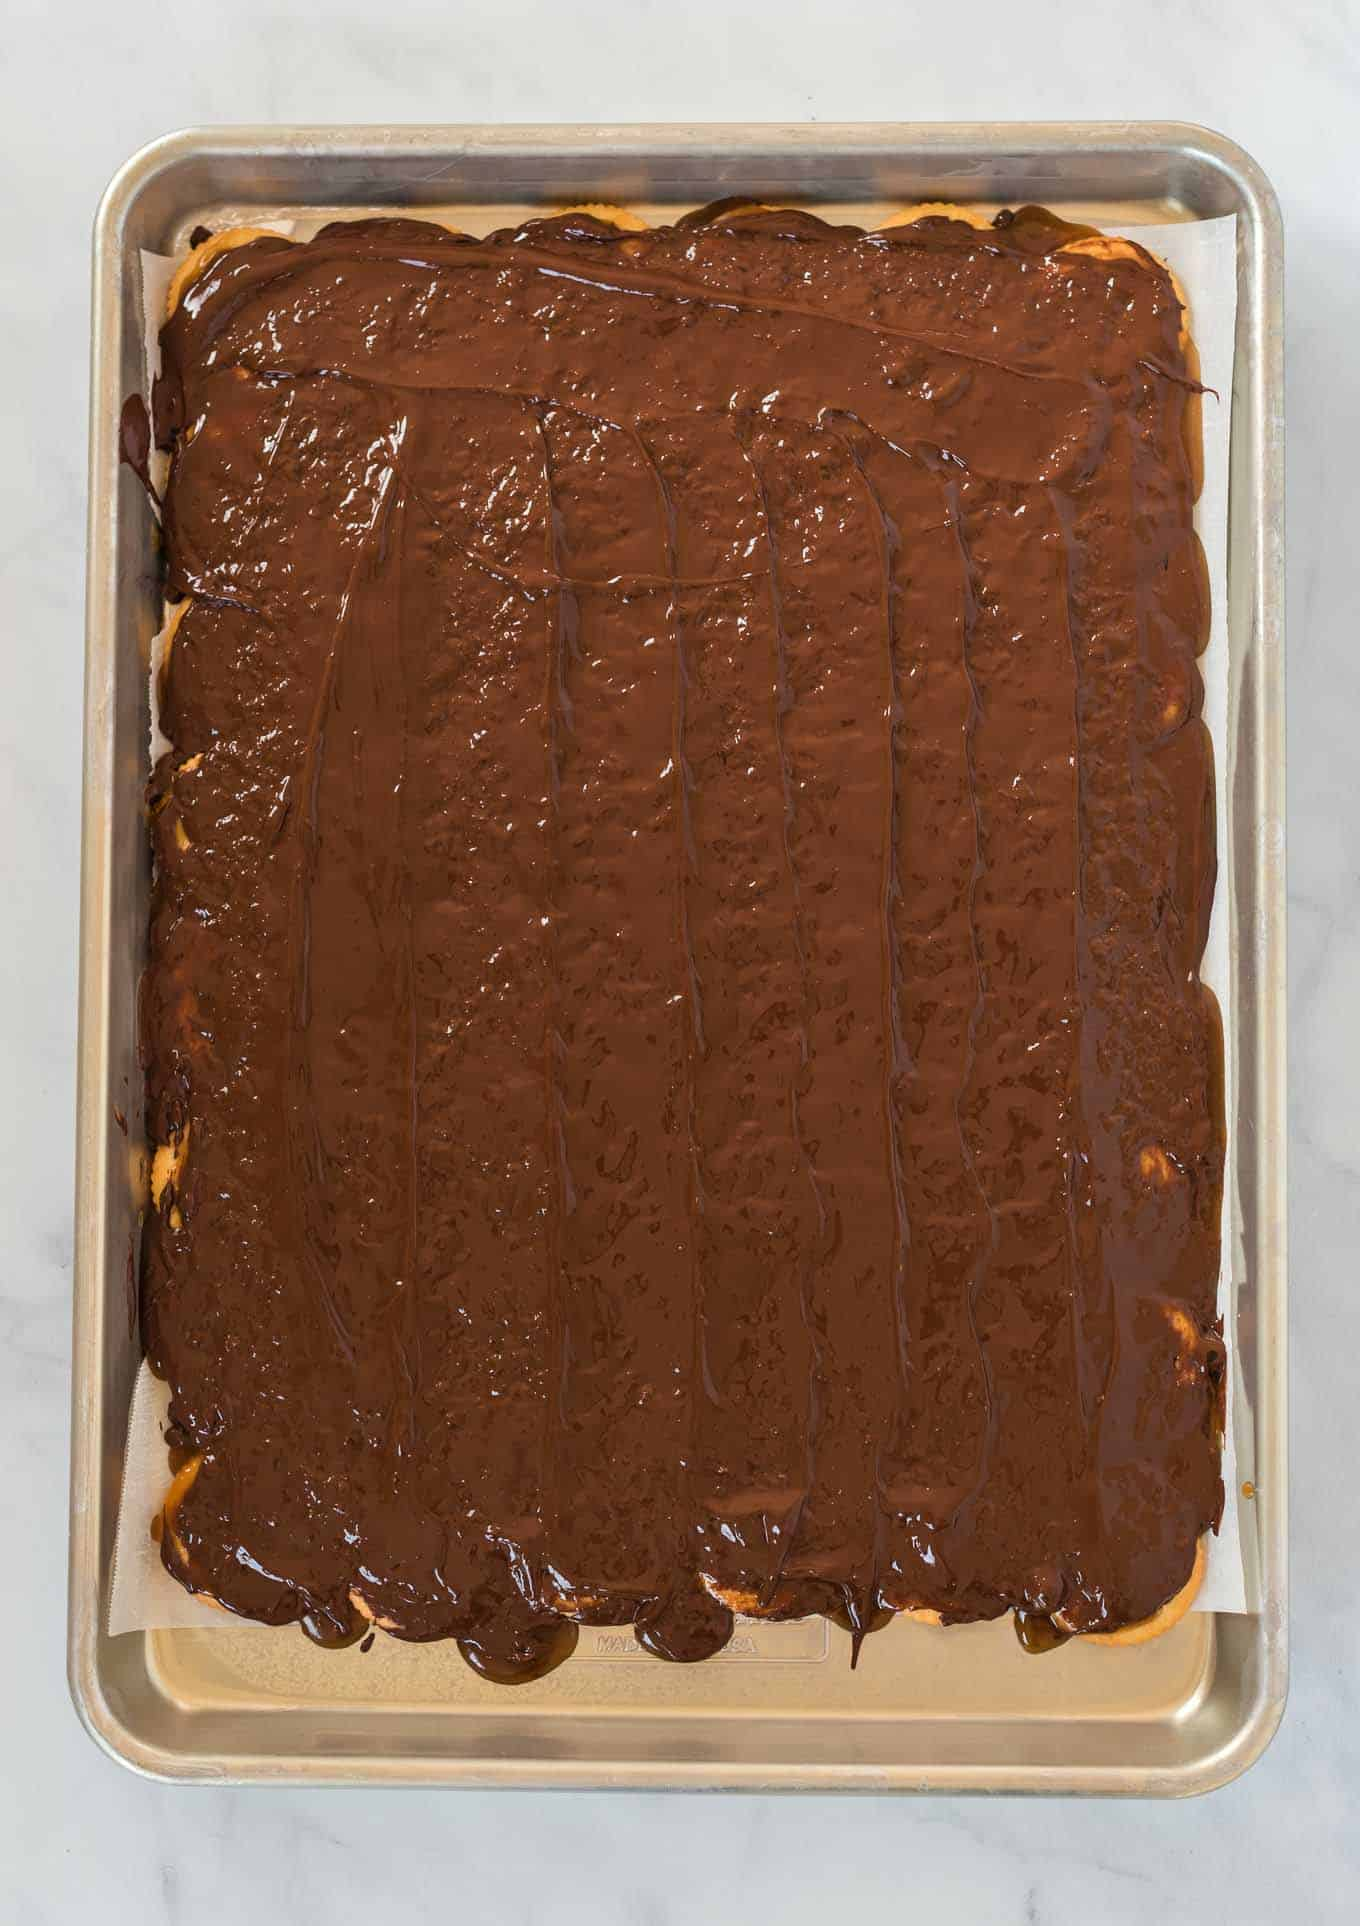 baking sheet lined with ritz crackers covered in melted chocolate